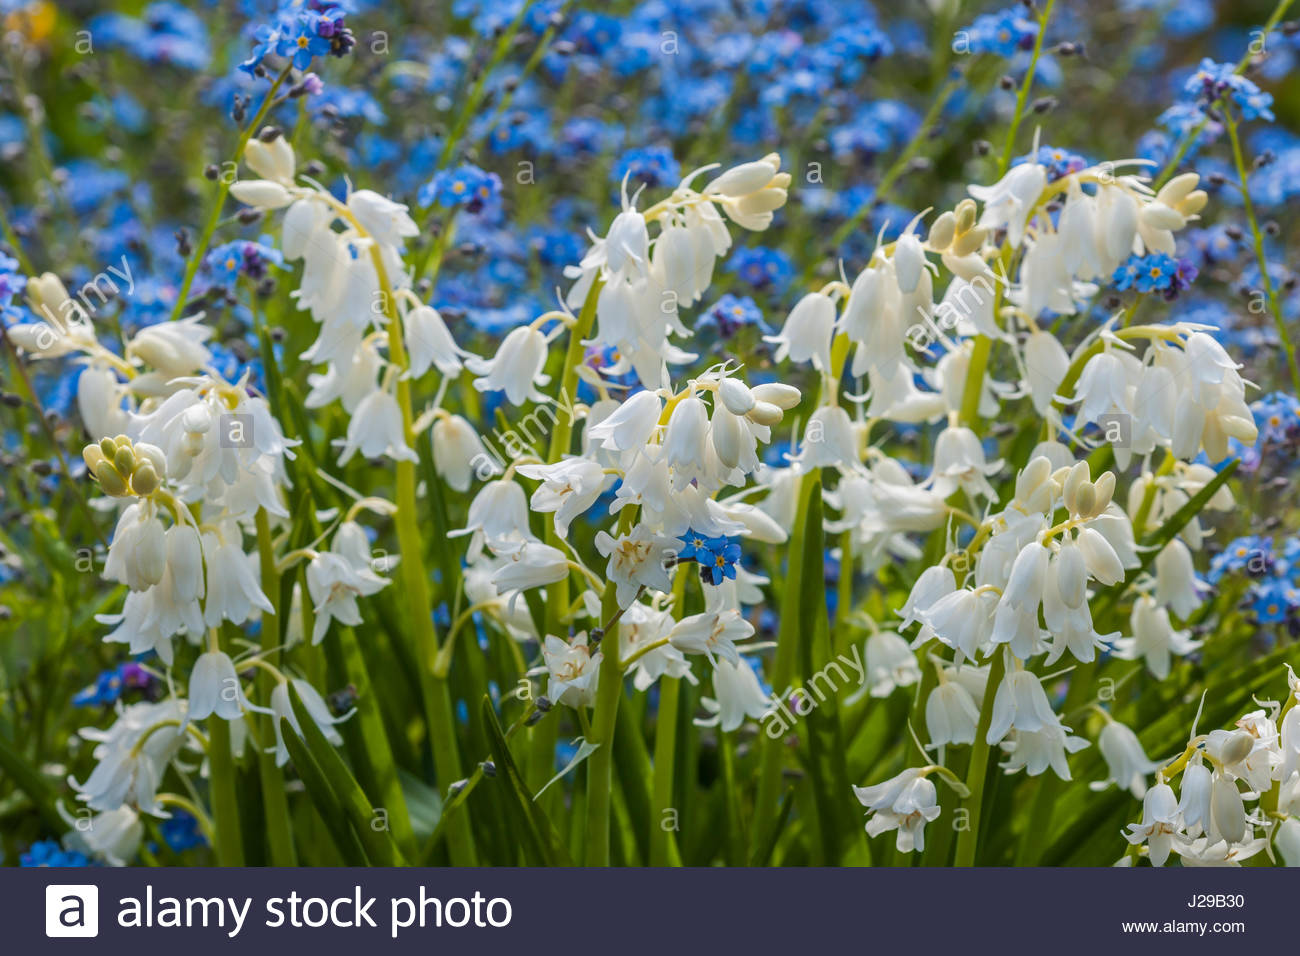 White bluebells stock photos white bluebells stock images alamy hybrid white bluebells stock image mightylinksfo